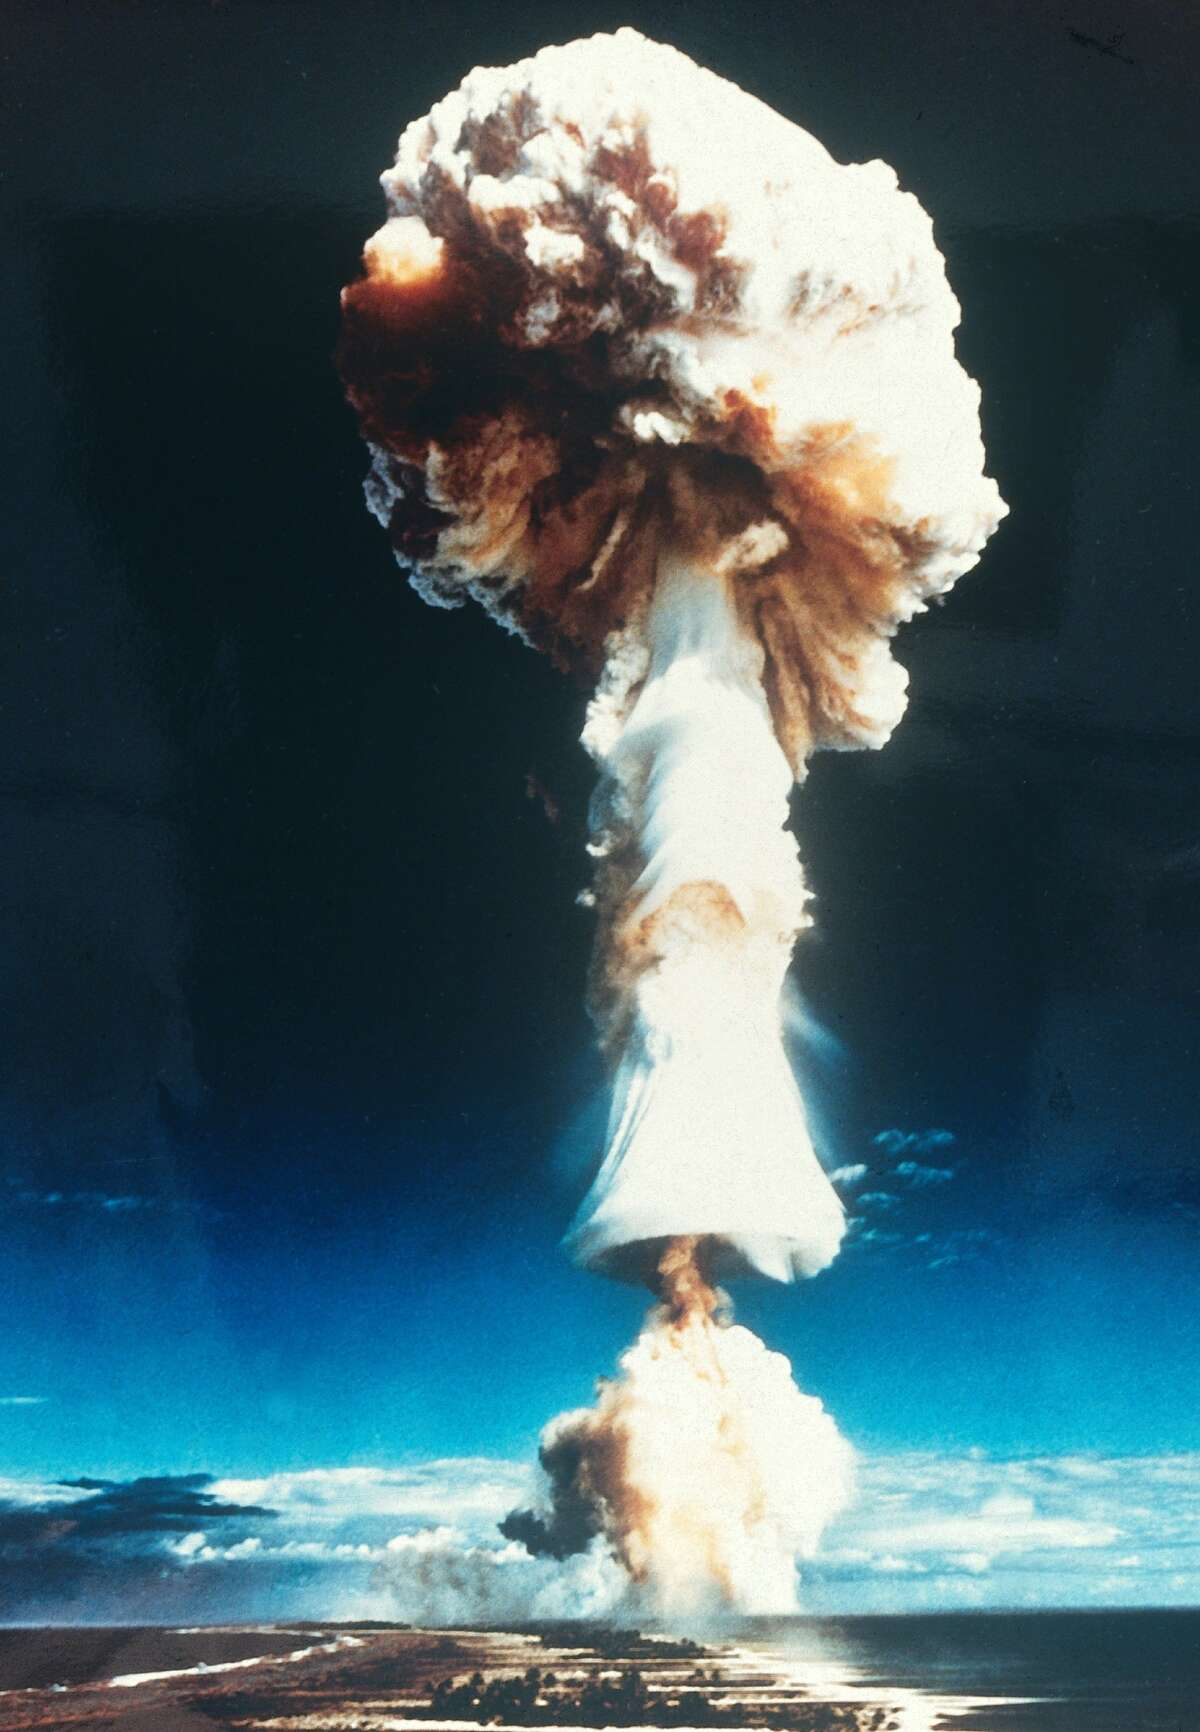 August 1968 France tested its first hydrogen bomb above Mururoa archipelago in the Pacific.